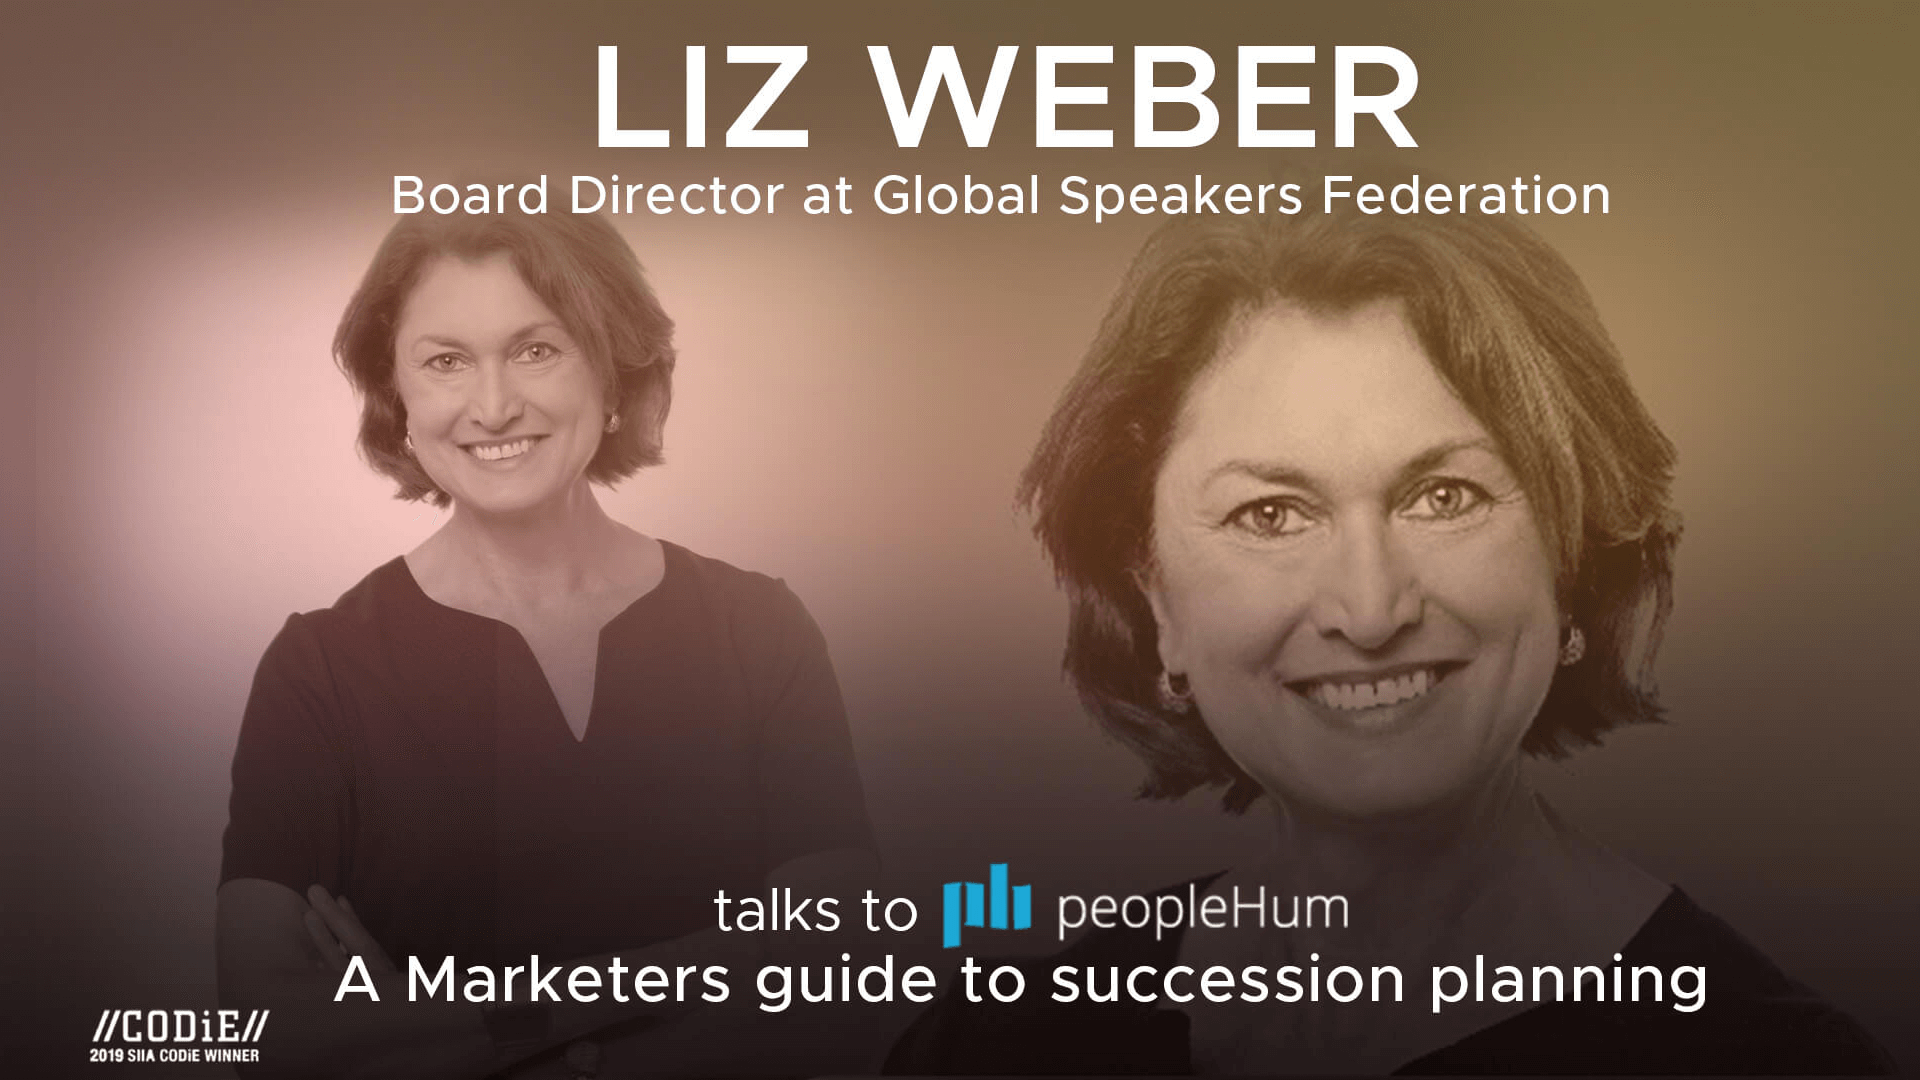 A marketer's guide to succession planning - Liz Weber [Interview]